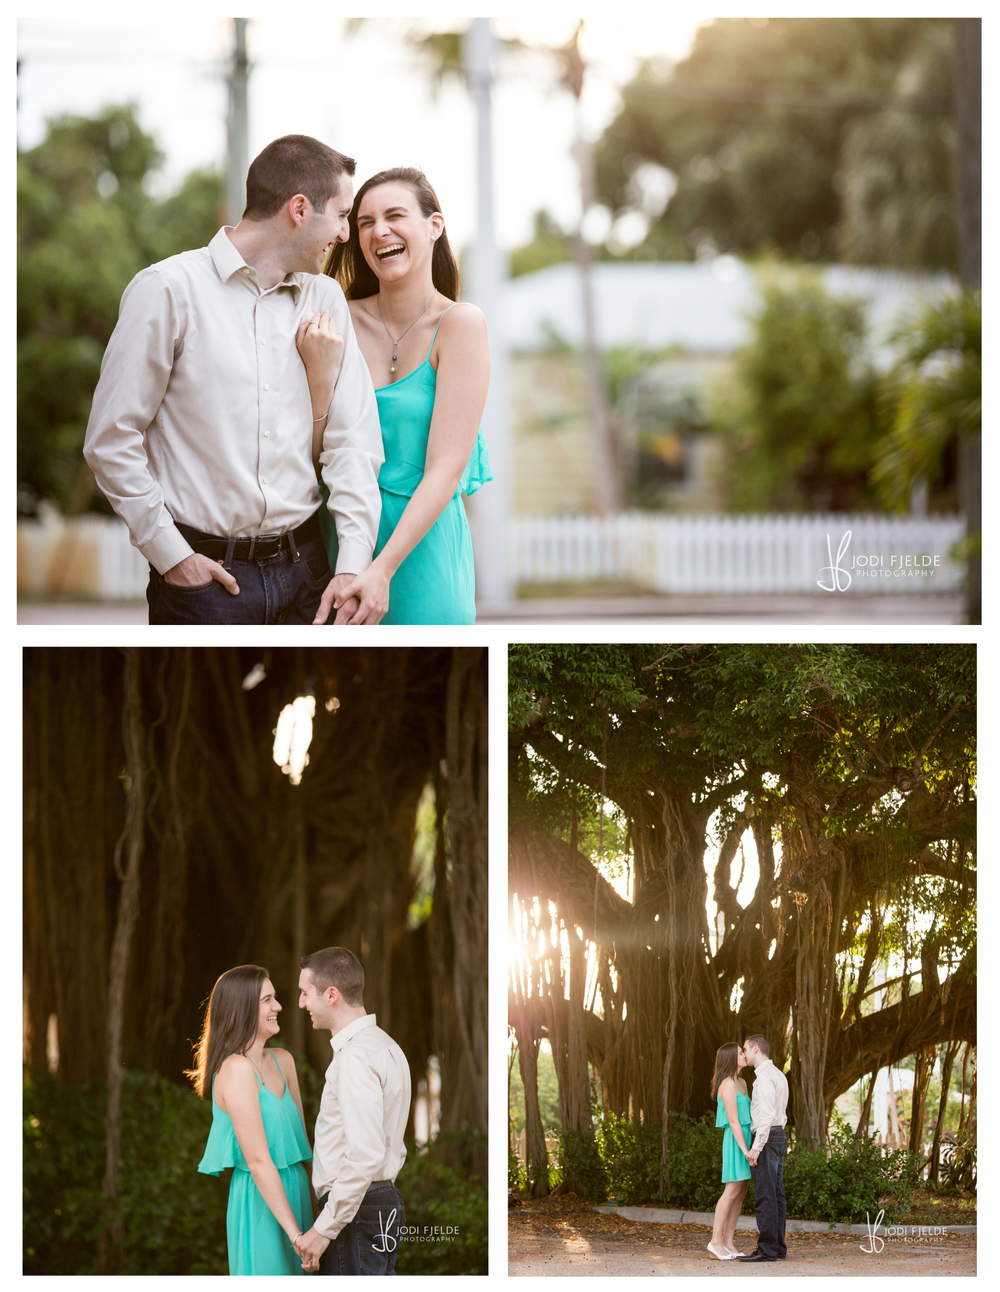 Delray_BEach_Sundy_HouseFlorida_engagement_E-session_Allison_&_Matt_photography_jodi_Fjelde_photography_5.jpg